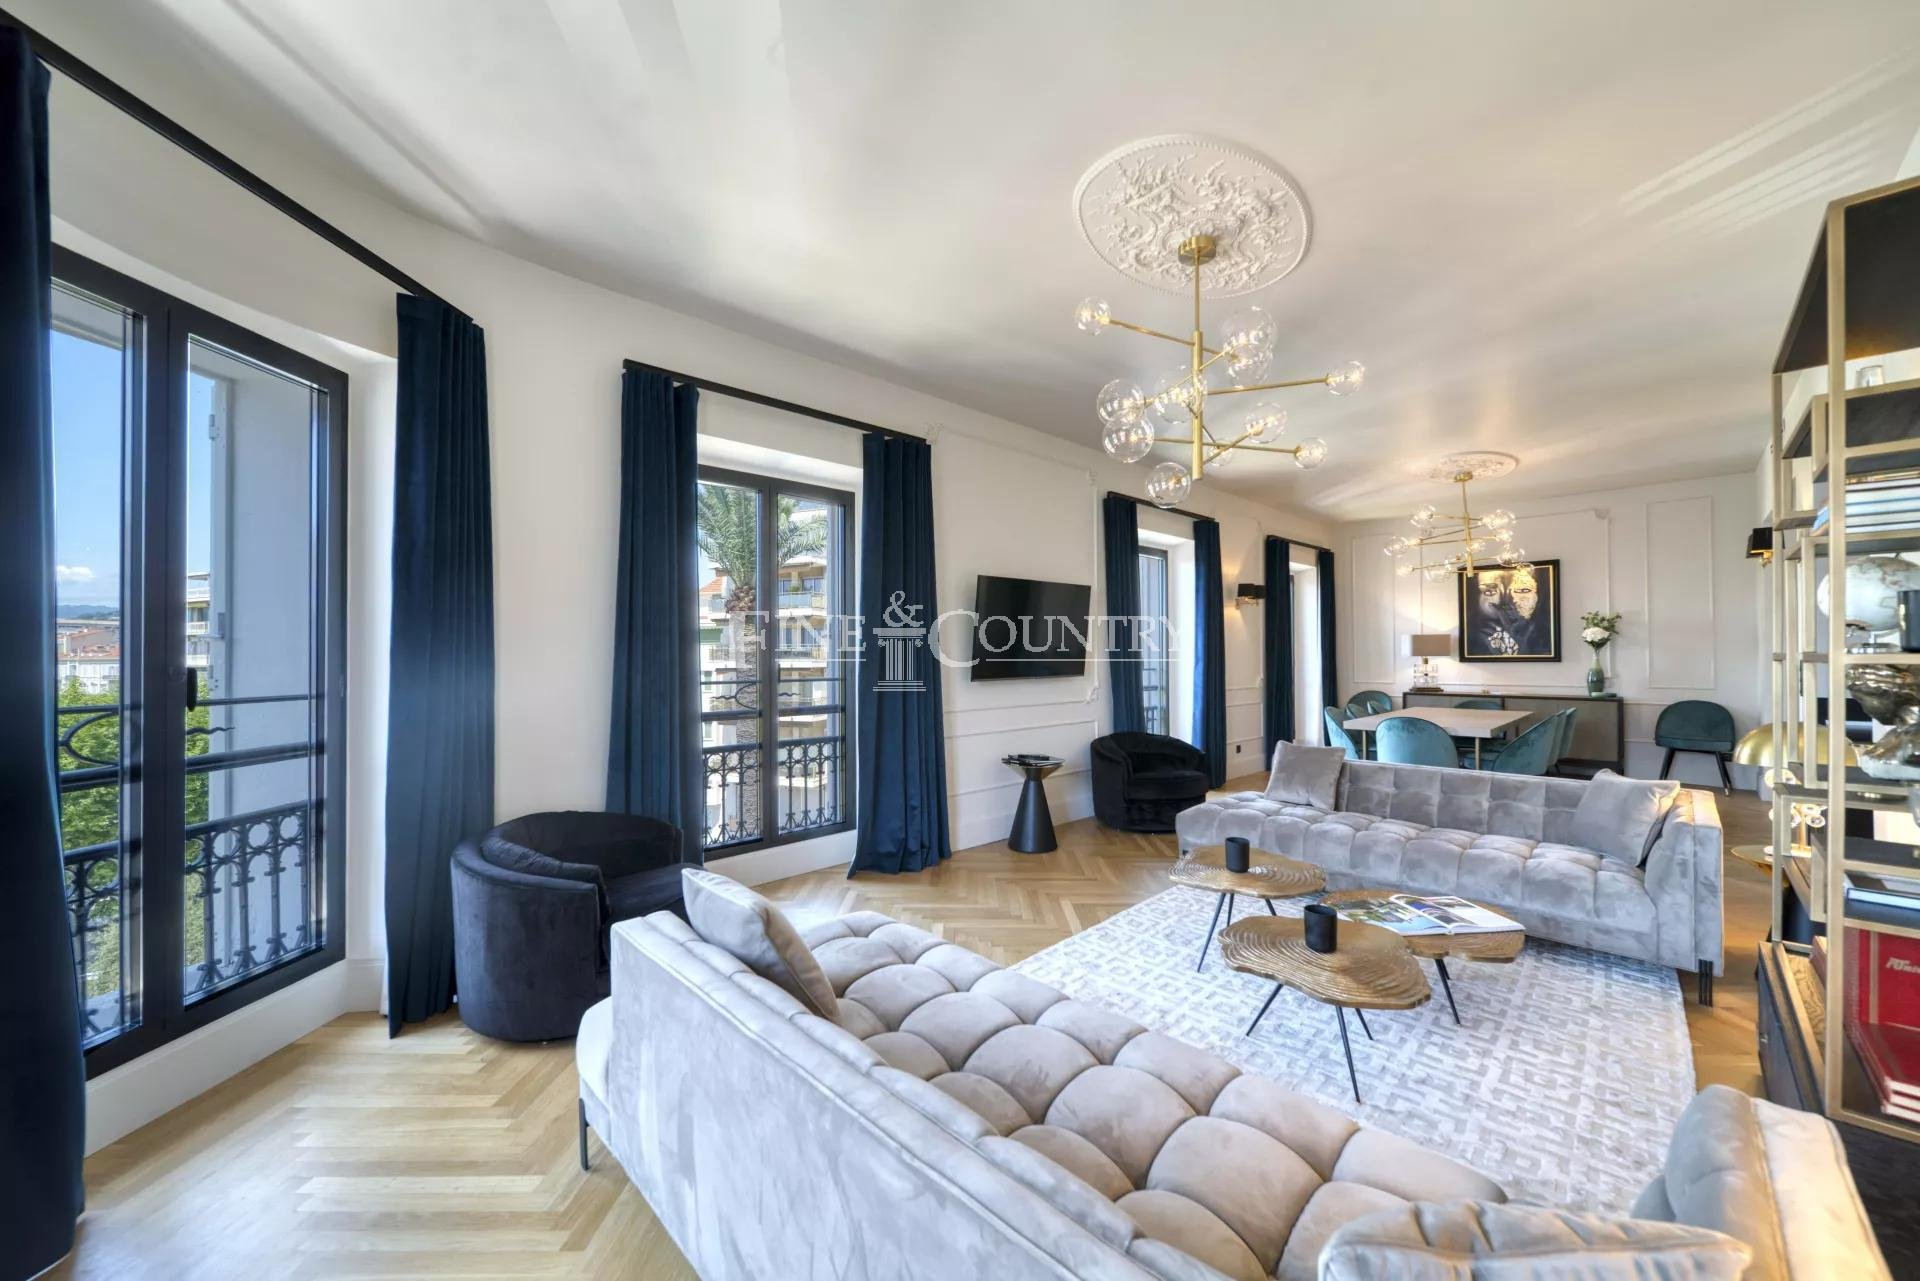 For Sale Bourgeois Apartment in Cannes, La Croisette Sea View